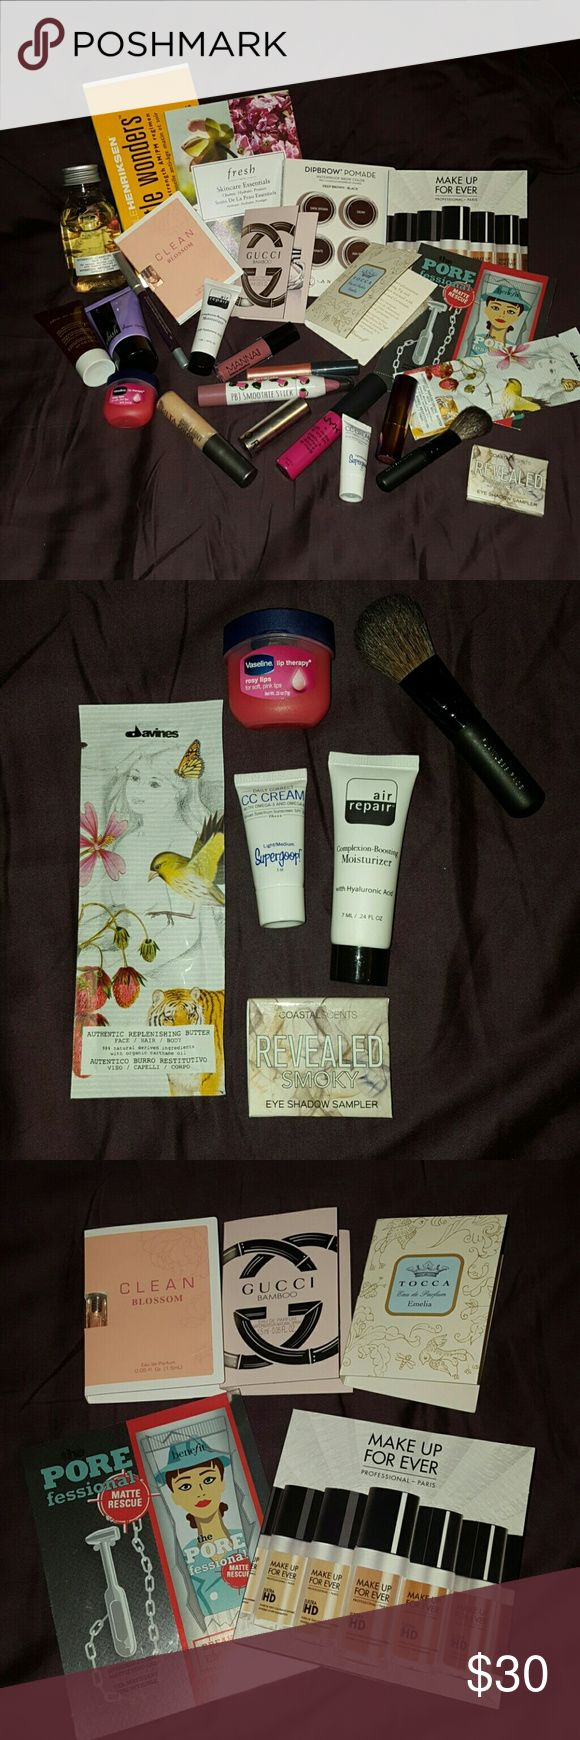 High end Make-up & Fragrance  Sample Bundle Several samples from Birchbox, Sephora, and Ulta. Majority are brand new! Few have been tested and cleaned. Brands: Ole Henriksen, Urban Decay, Anastasia Berry Hills, Fresh, Tarte, Benefit, Tocca, Gucci, Fresh, Make Up For Ever, Nuxe, Davines, and Wish. Includes Sephora Play! bags. Sephora Makeup